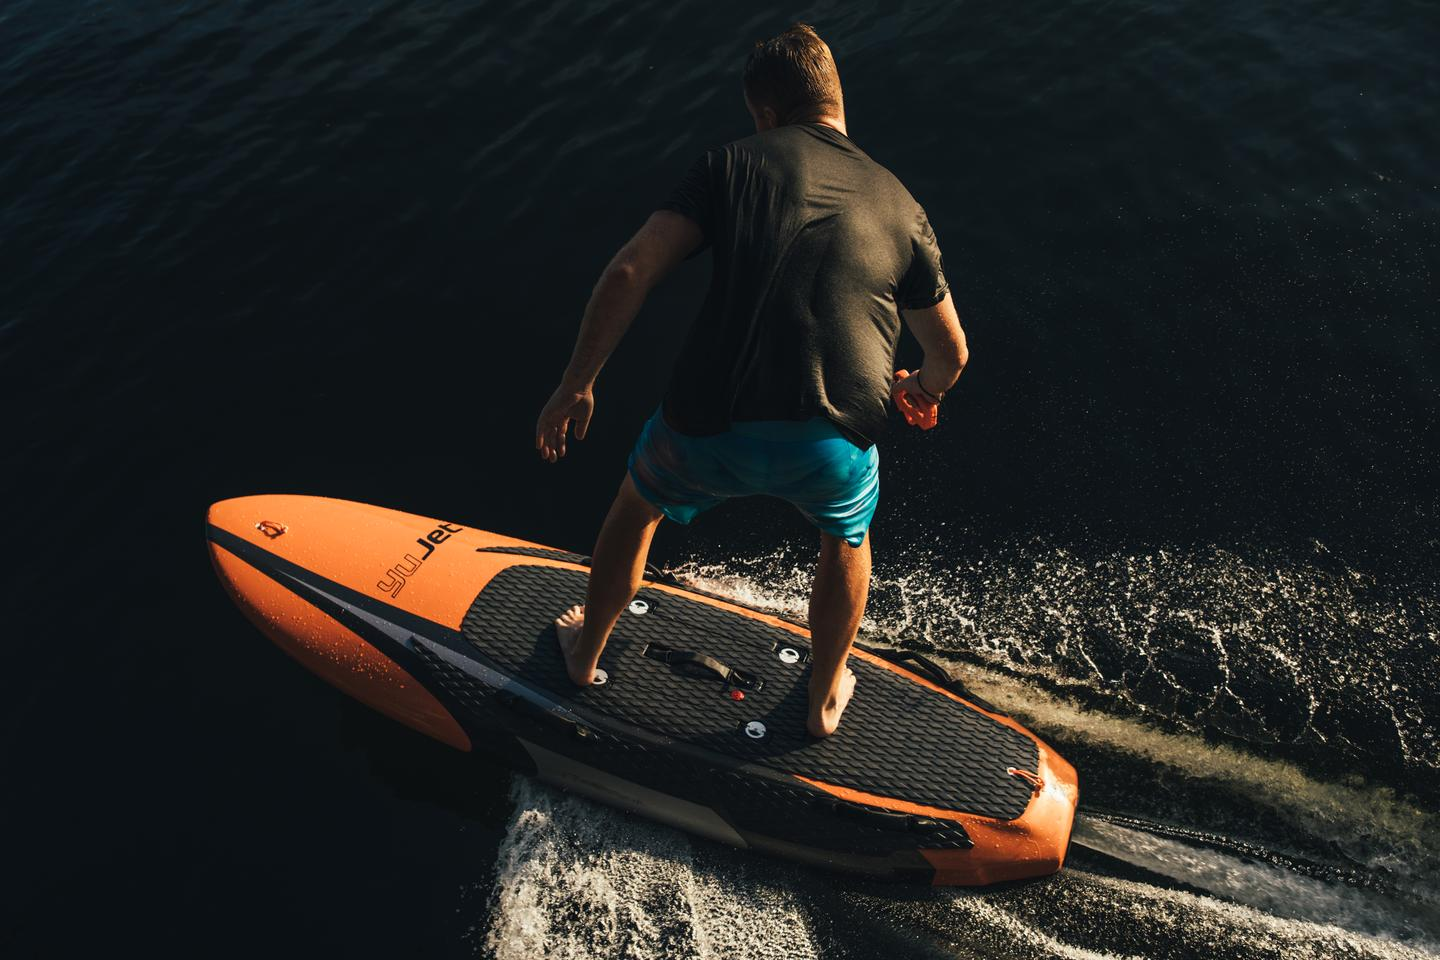 The YuJet Surfer is controlled using a wireless hand-held remote, which offers two performance modes